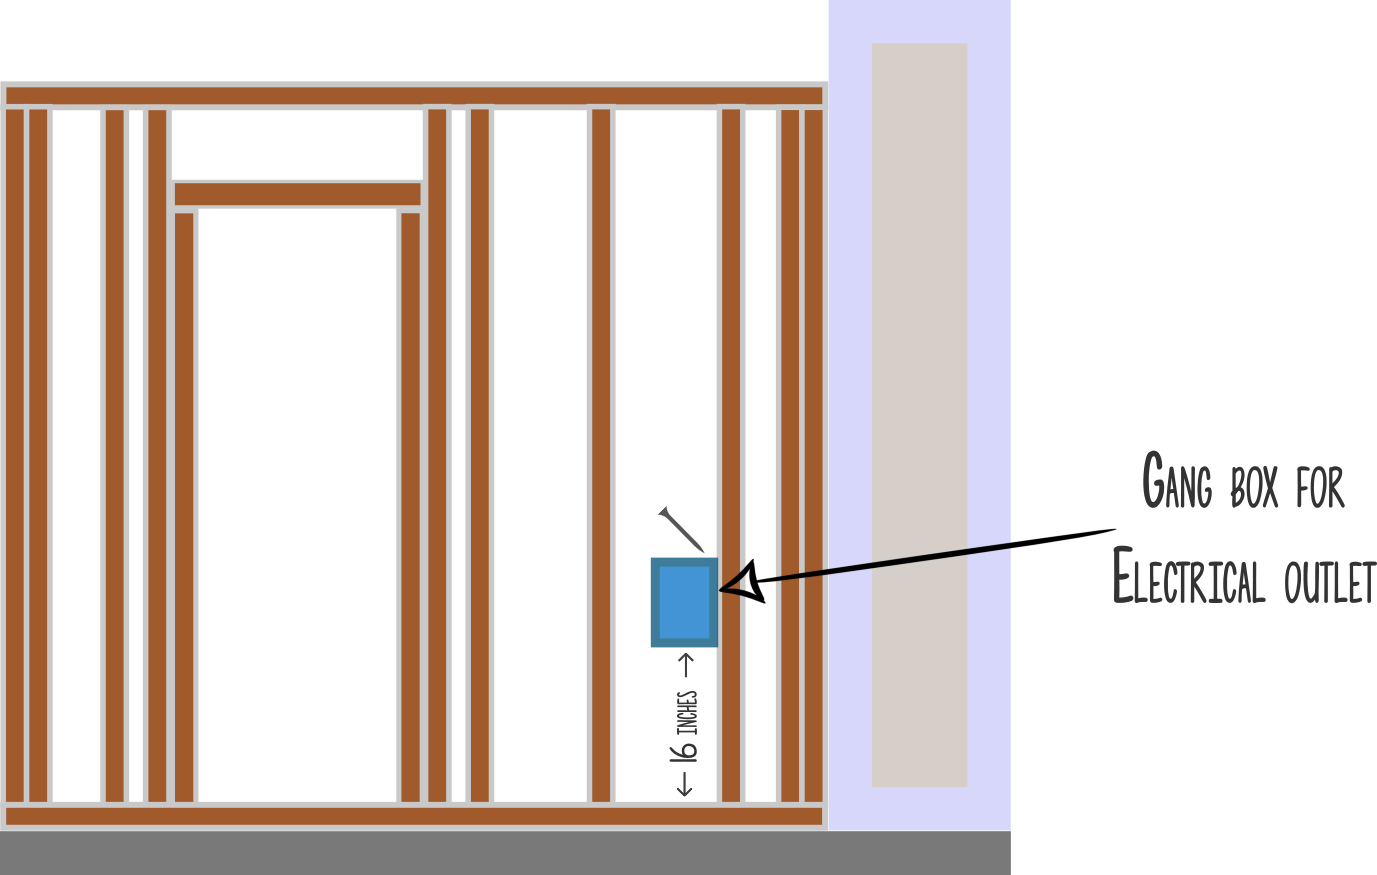 Gang Box for Electrical Outlet Diagram